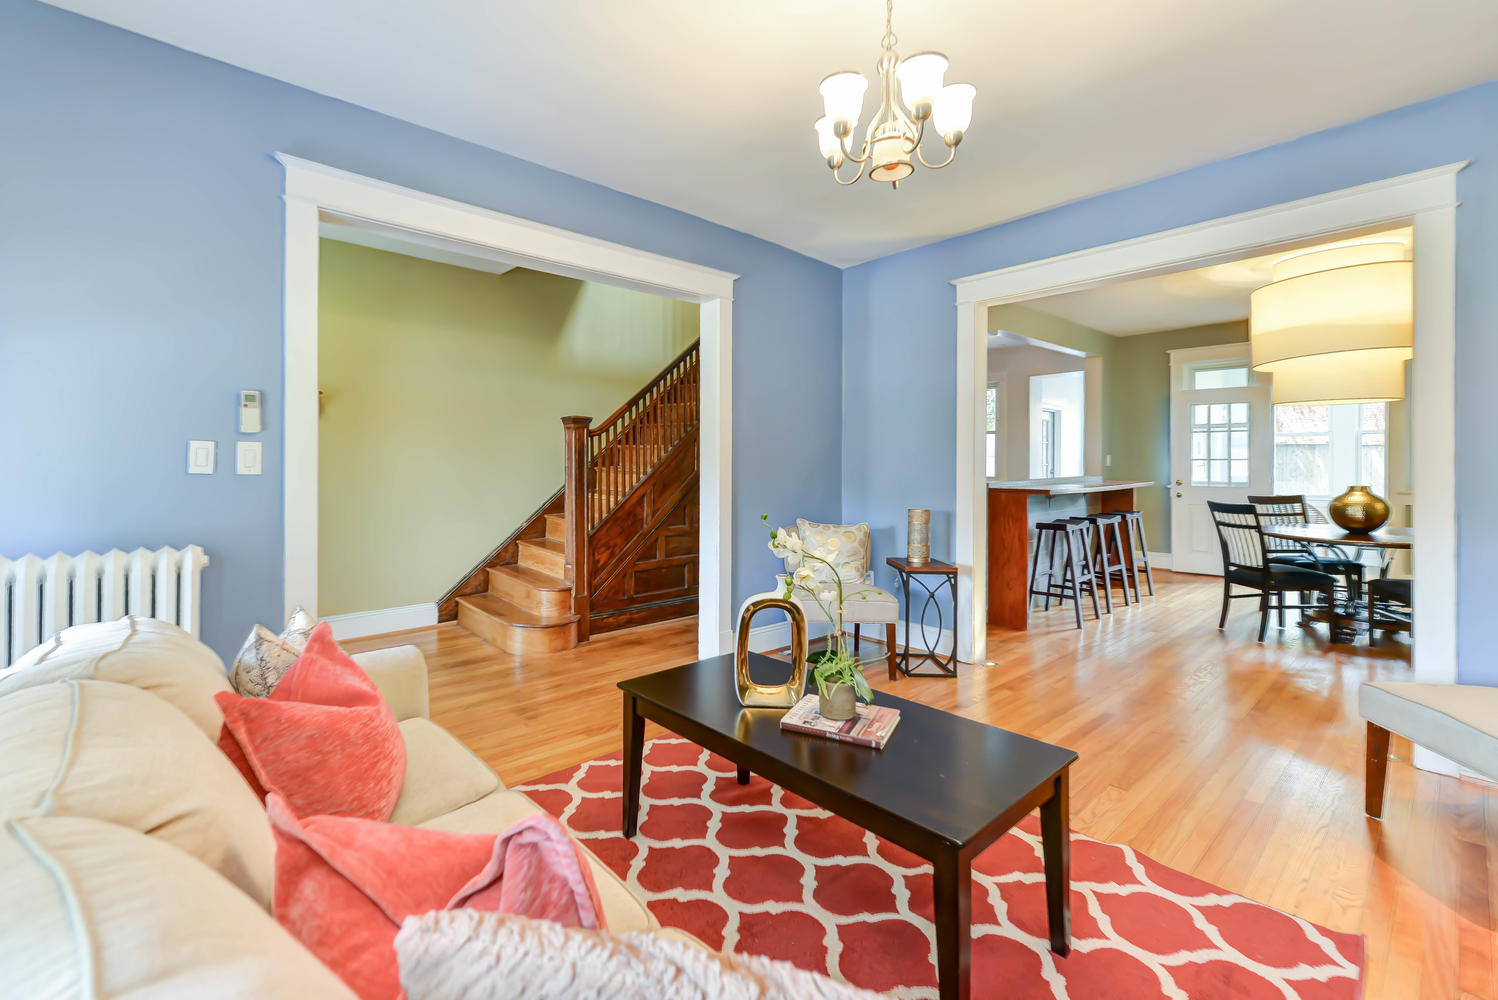 Original wood and renovated features make this Wardman rowhouse a wonderful home.